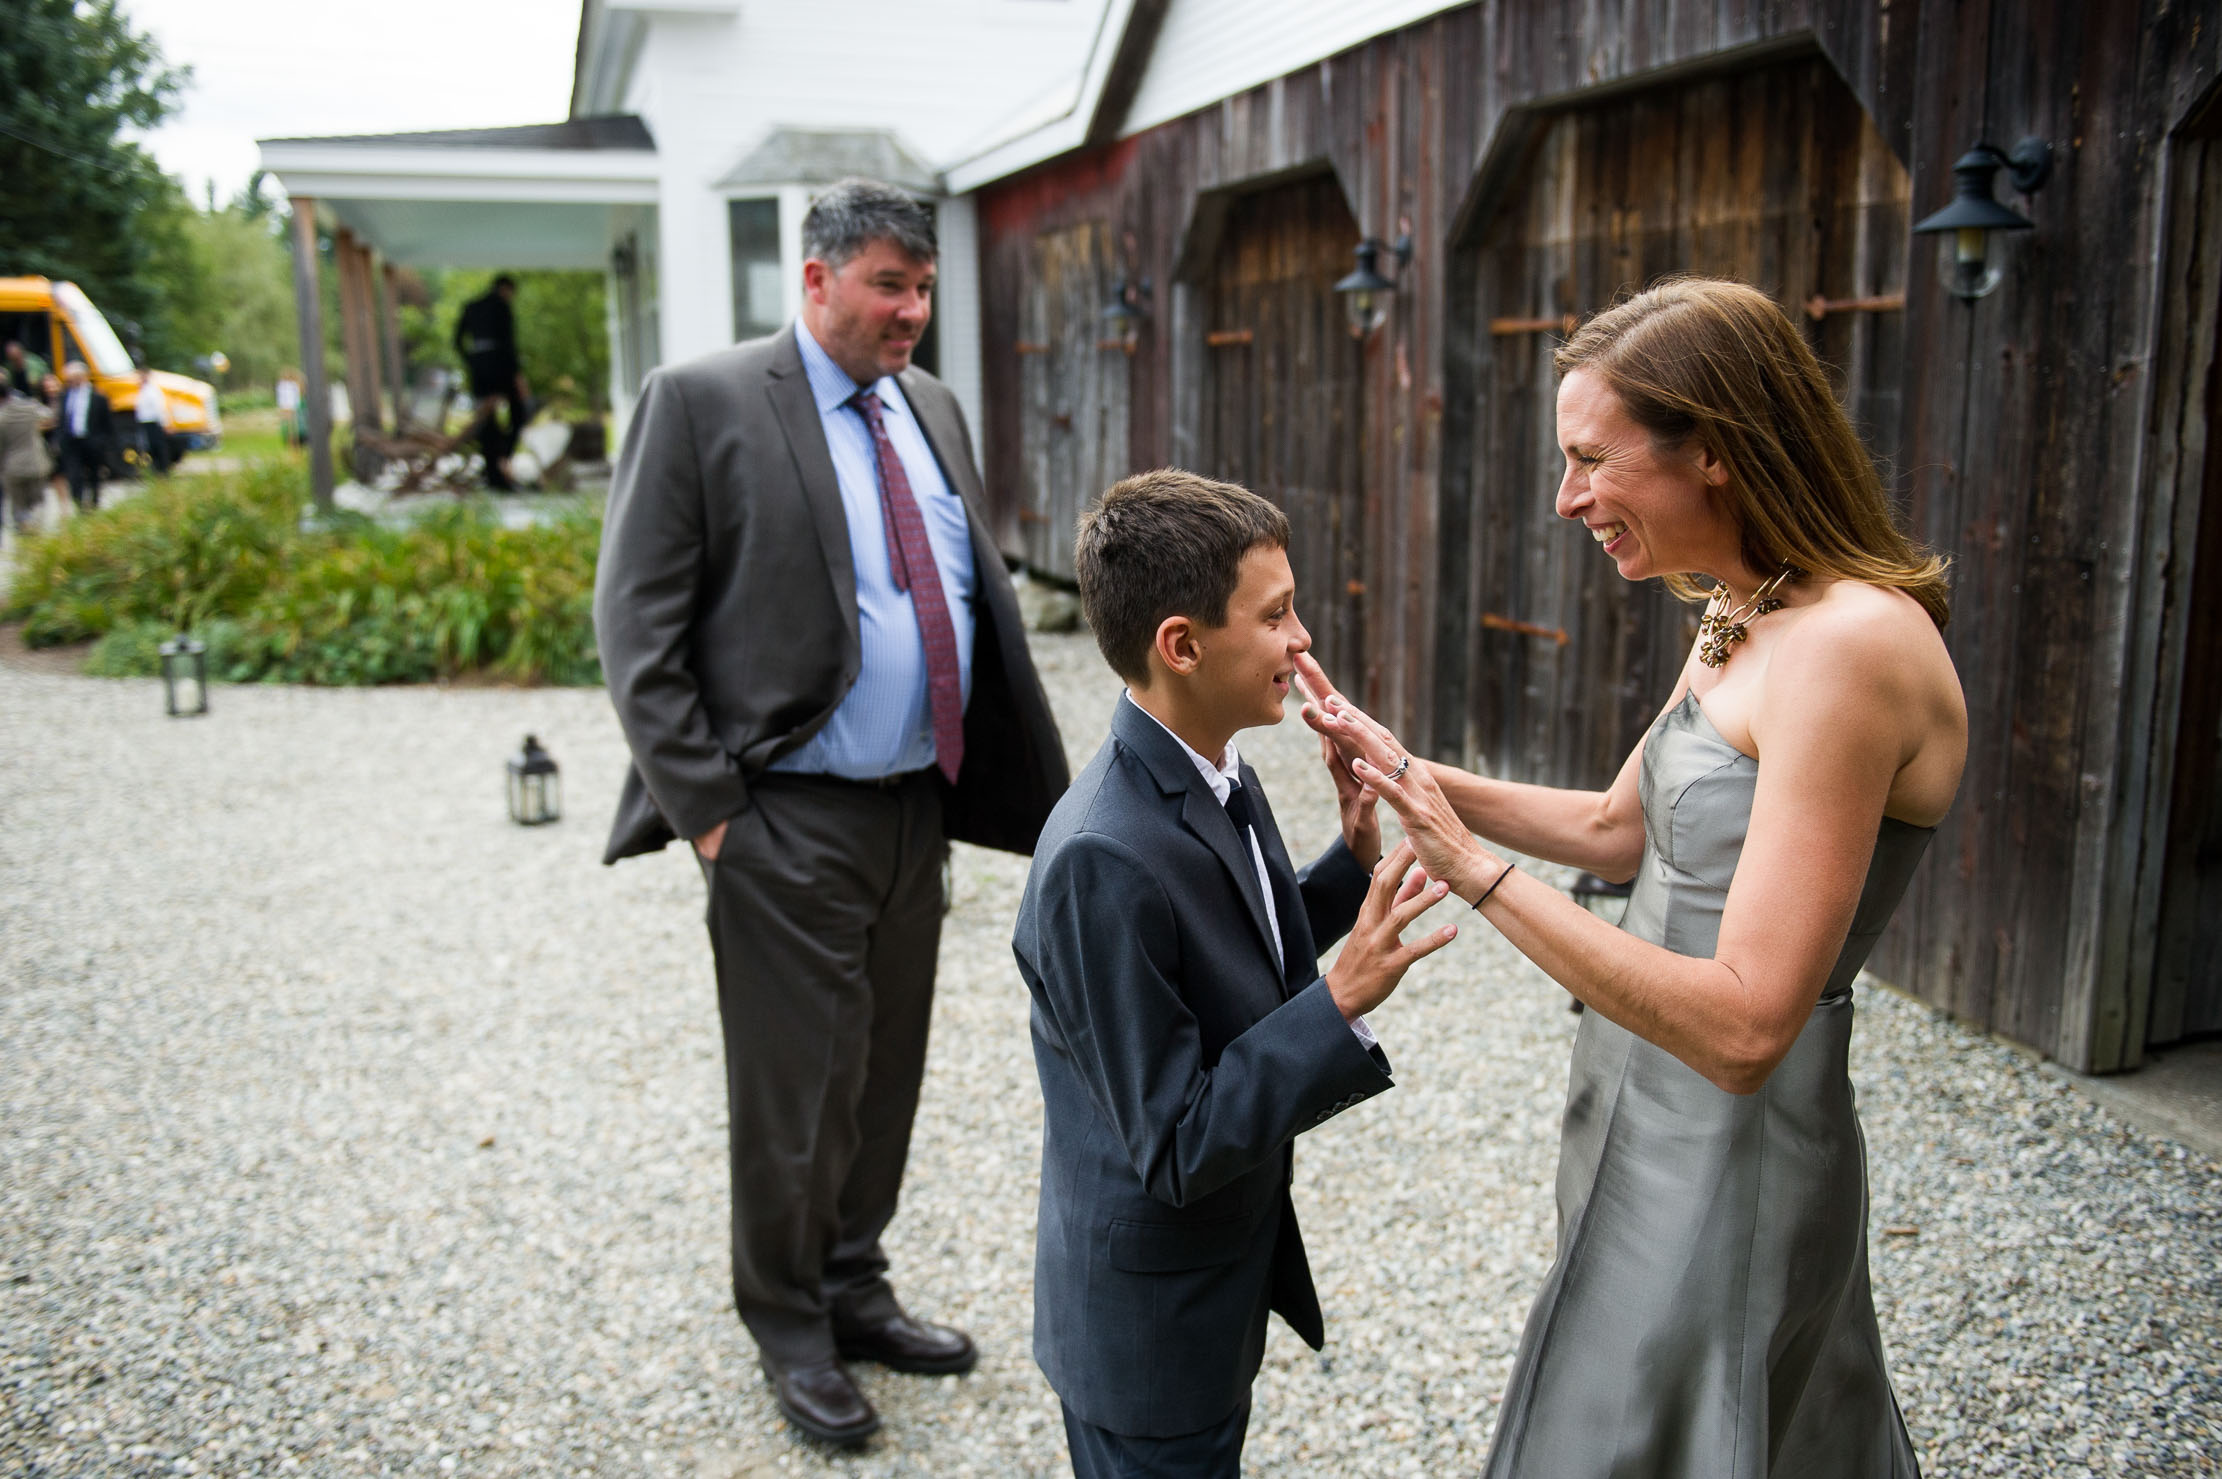 VERMONT-BARN-NYC-WEDDING-PHOTOGRAPHER-1047.jpg